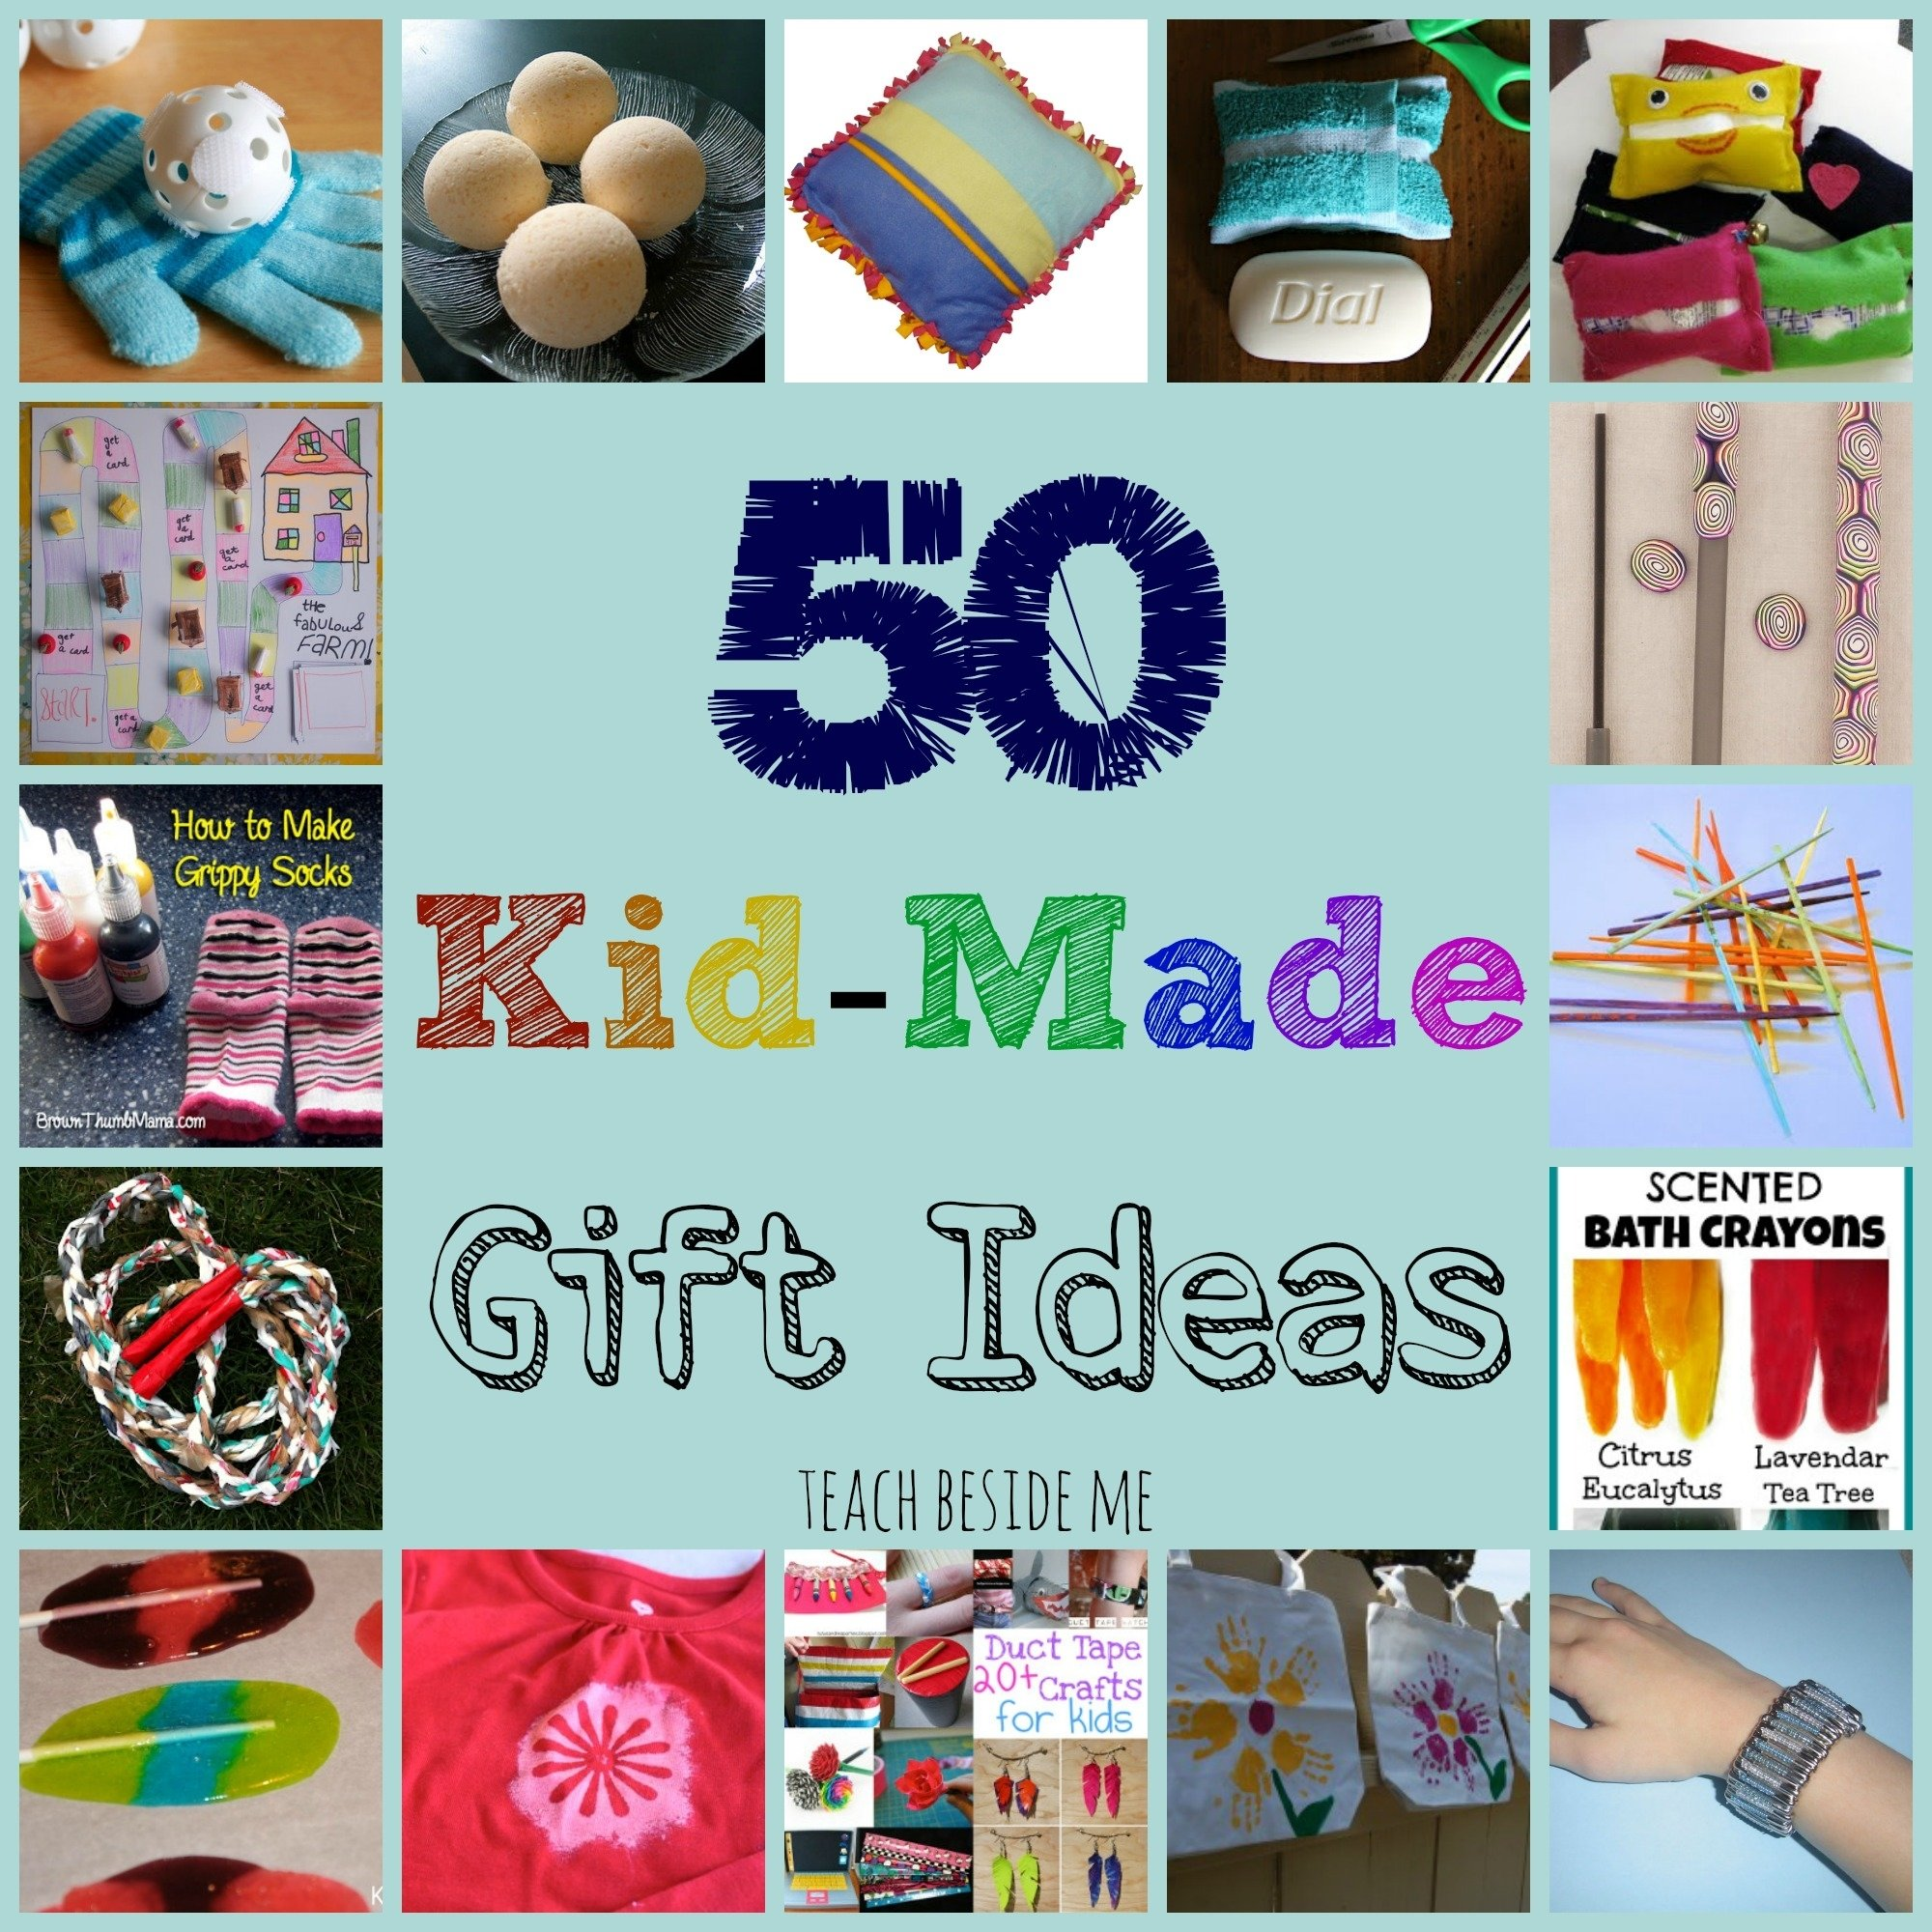 kid-made gift ideas for family - teach beside me